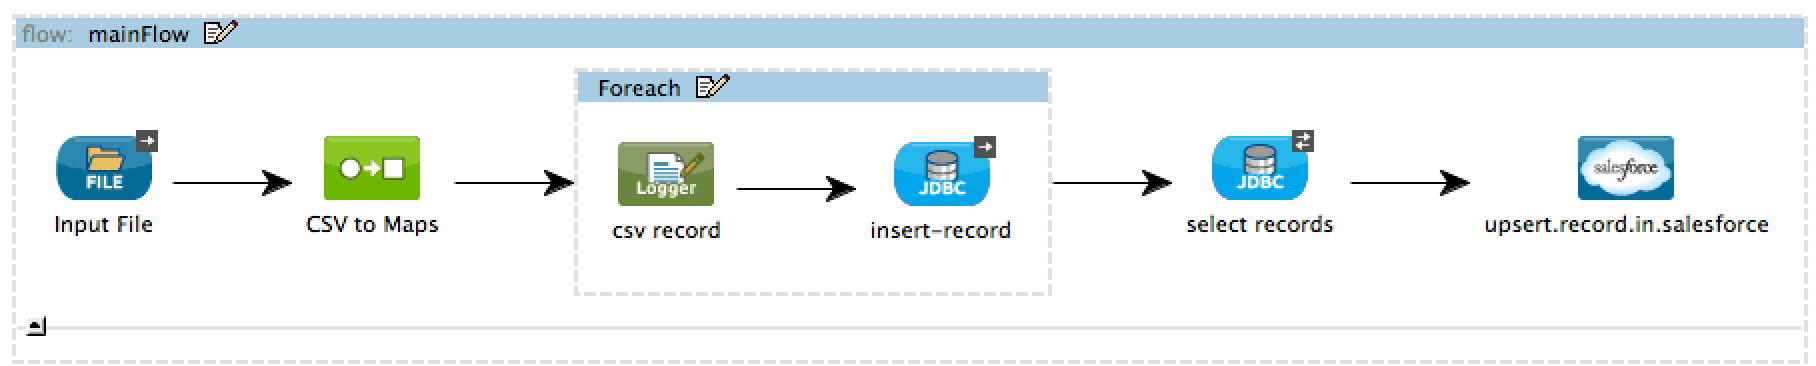 Using in-memory database to help with flat file integration